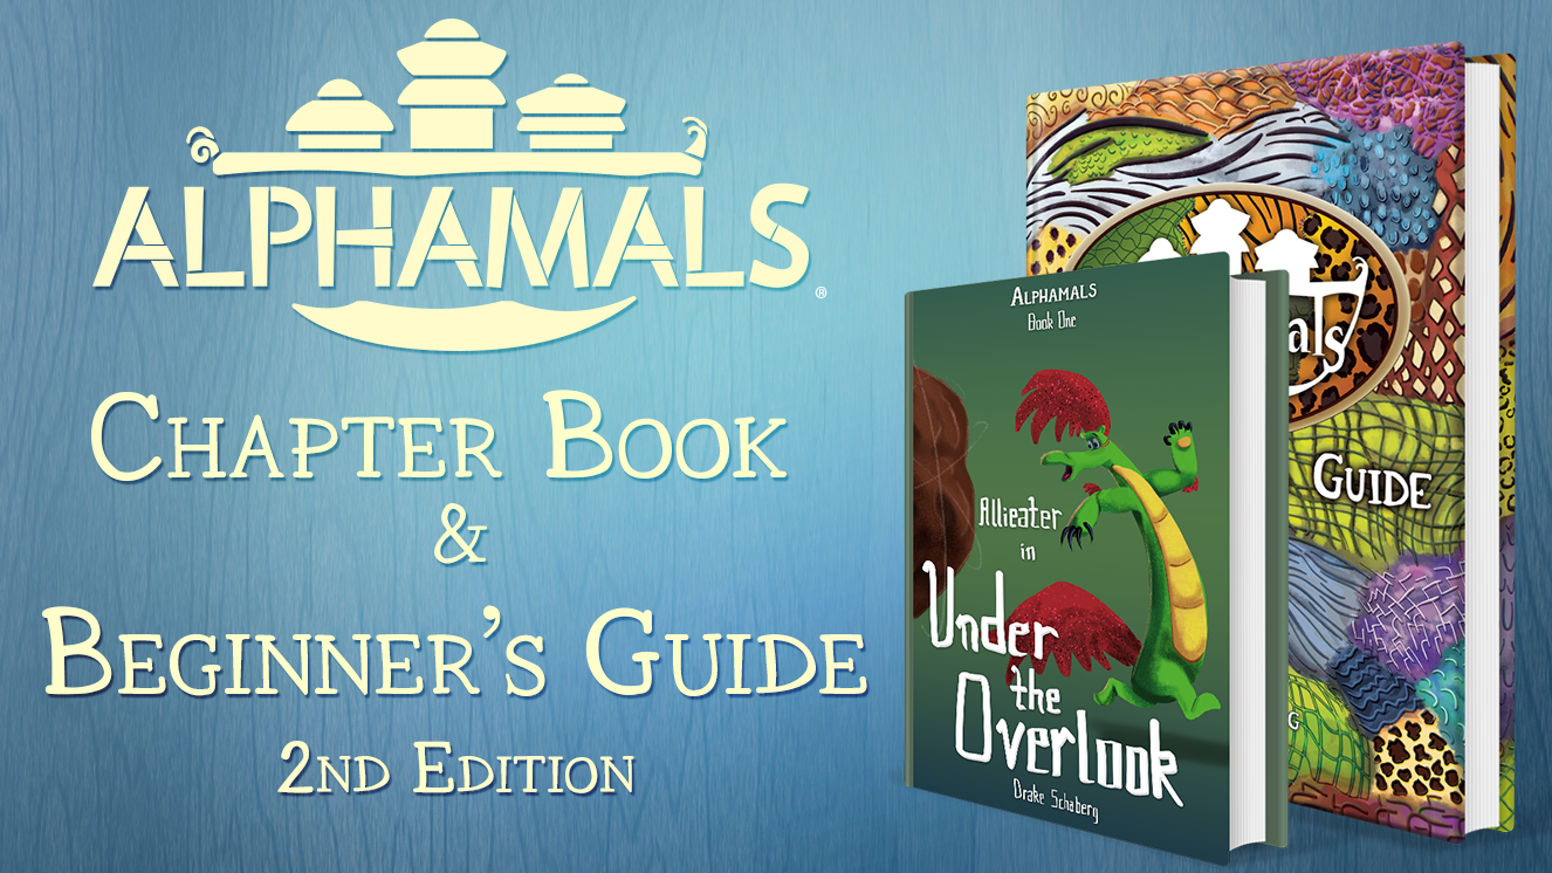 The Alphamals' world is expanding and their story has begun. Finally, the Beginner's Guide gets a companion, the first Chapter Book!